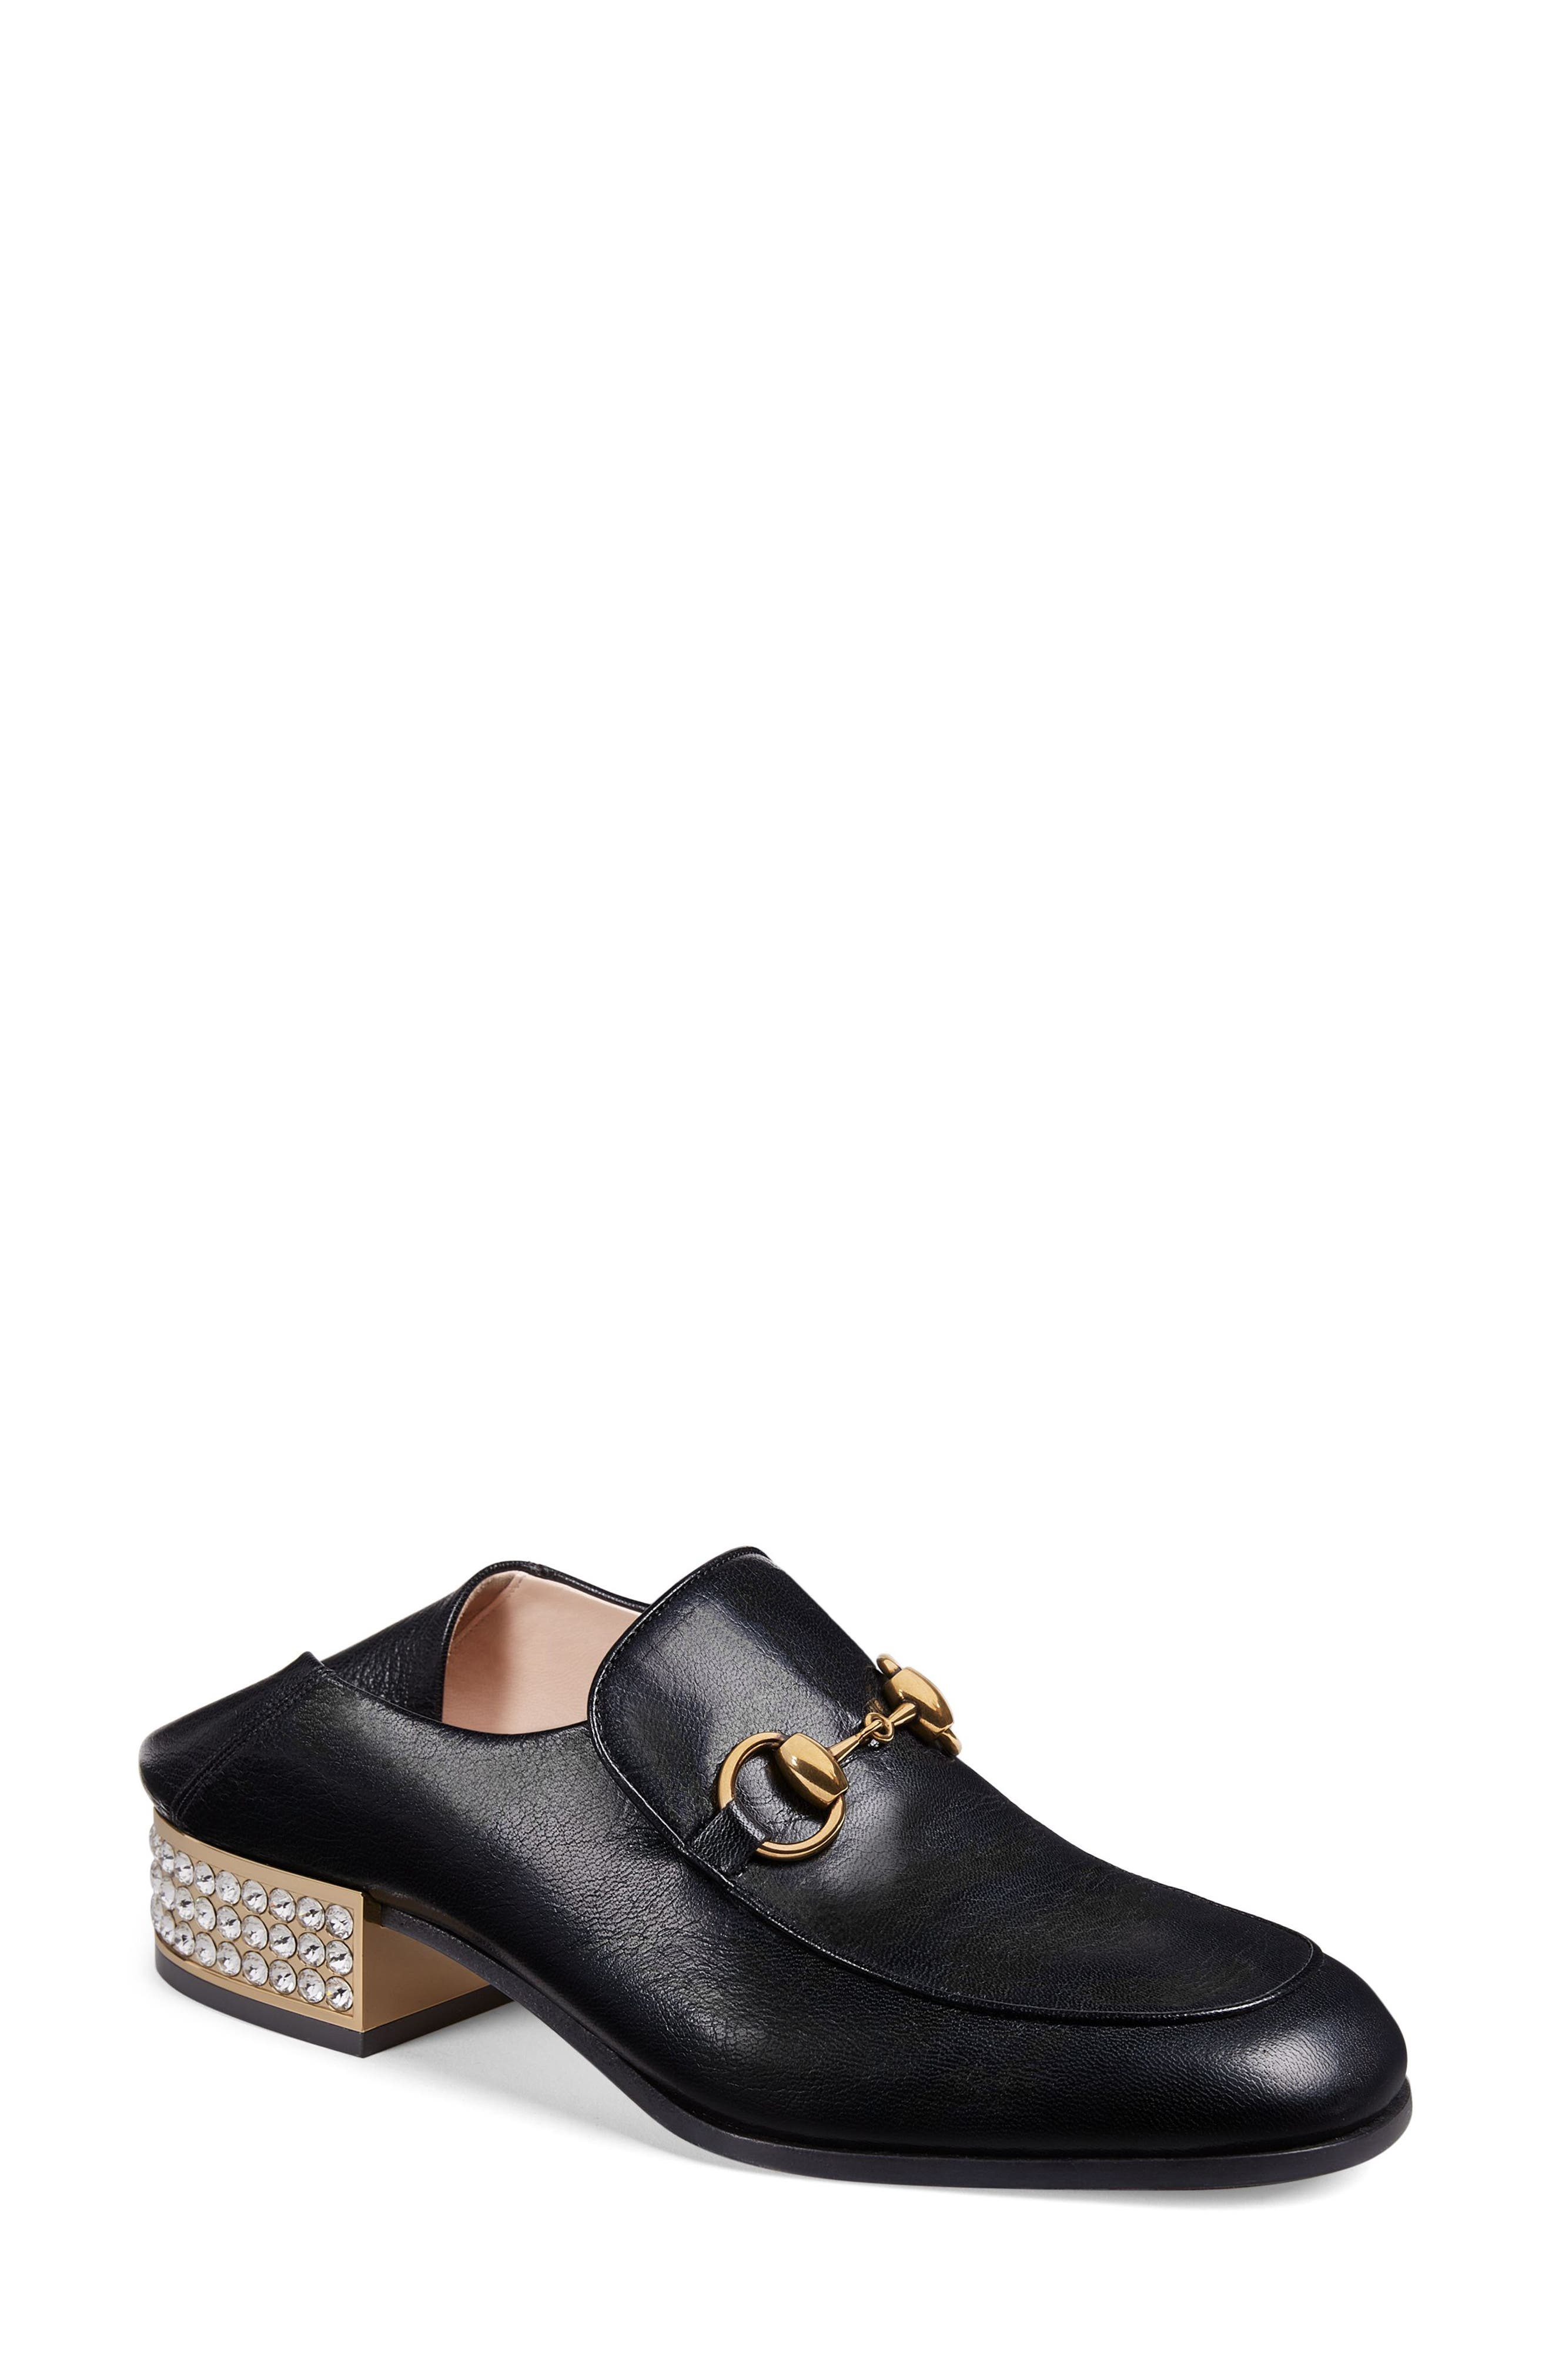 Mister Crystal Convertible Loafer,                             Main thumbnail 1, color,                             Black